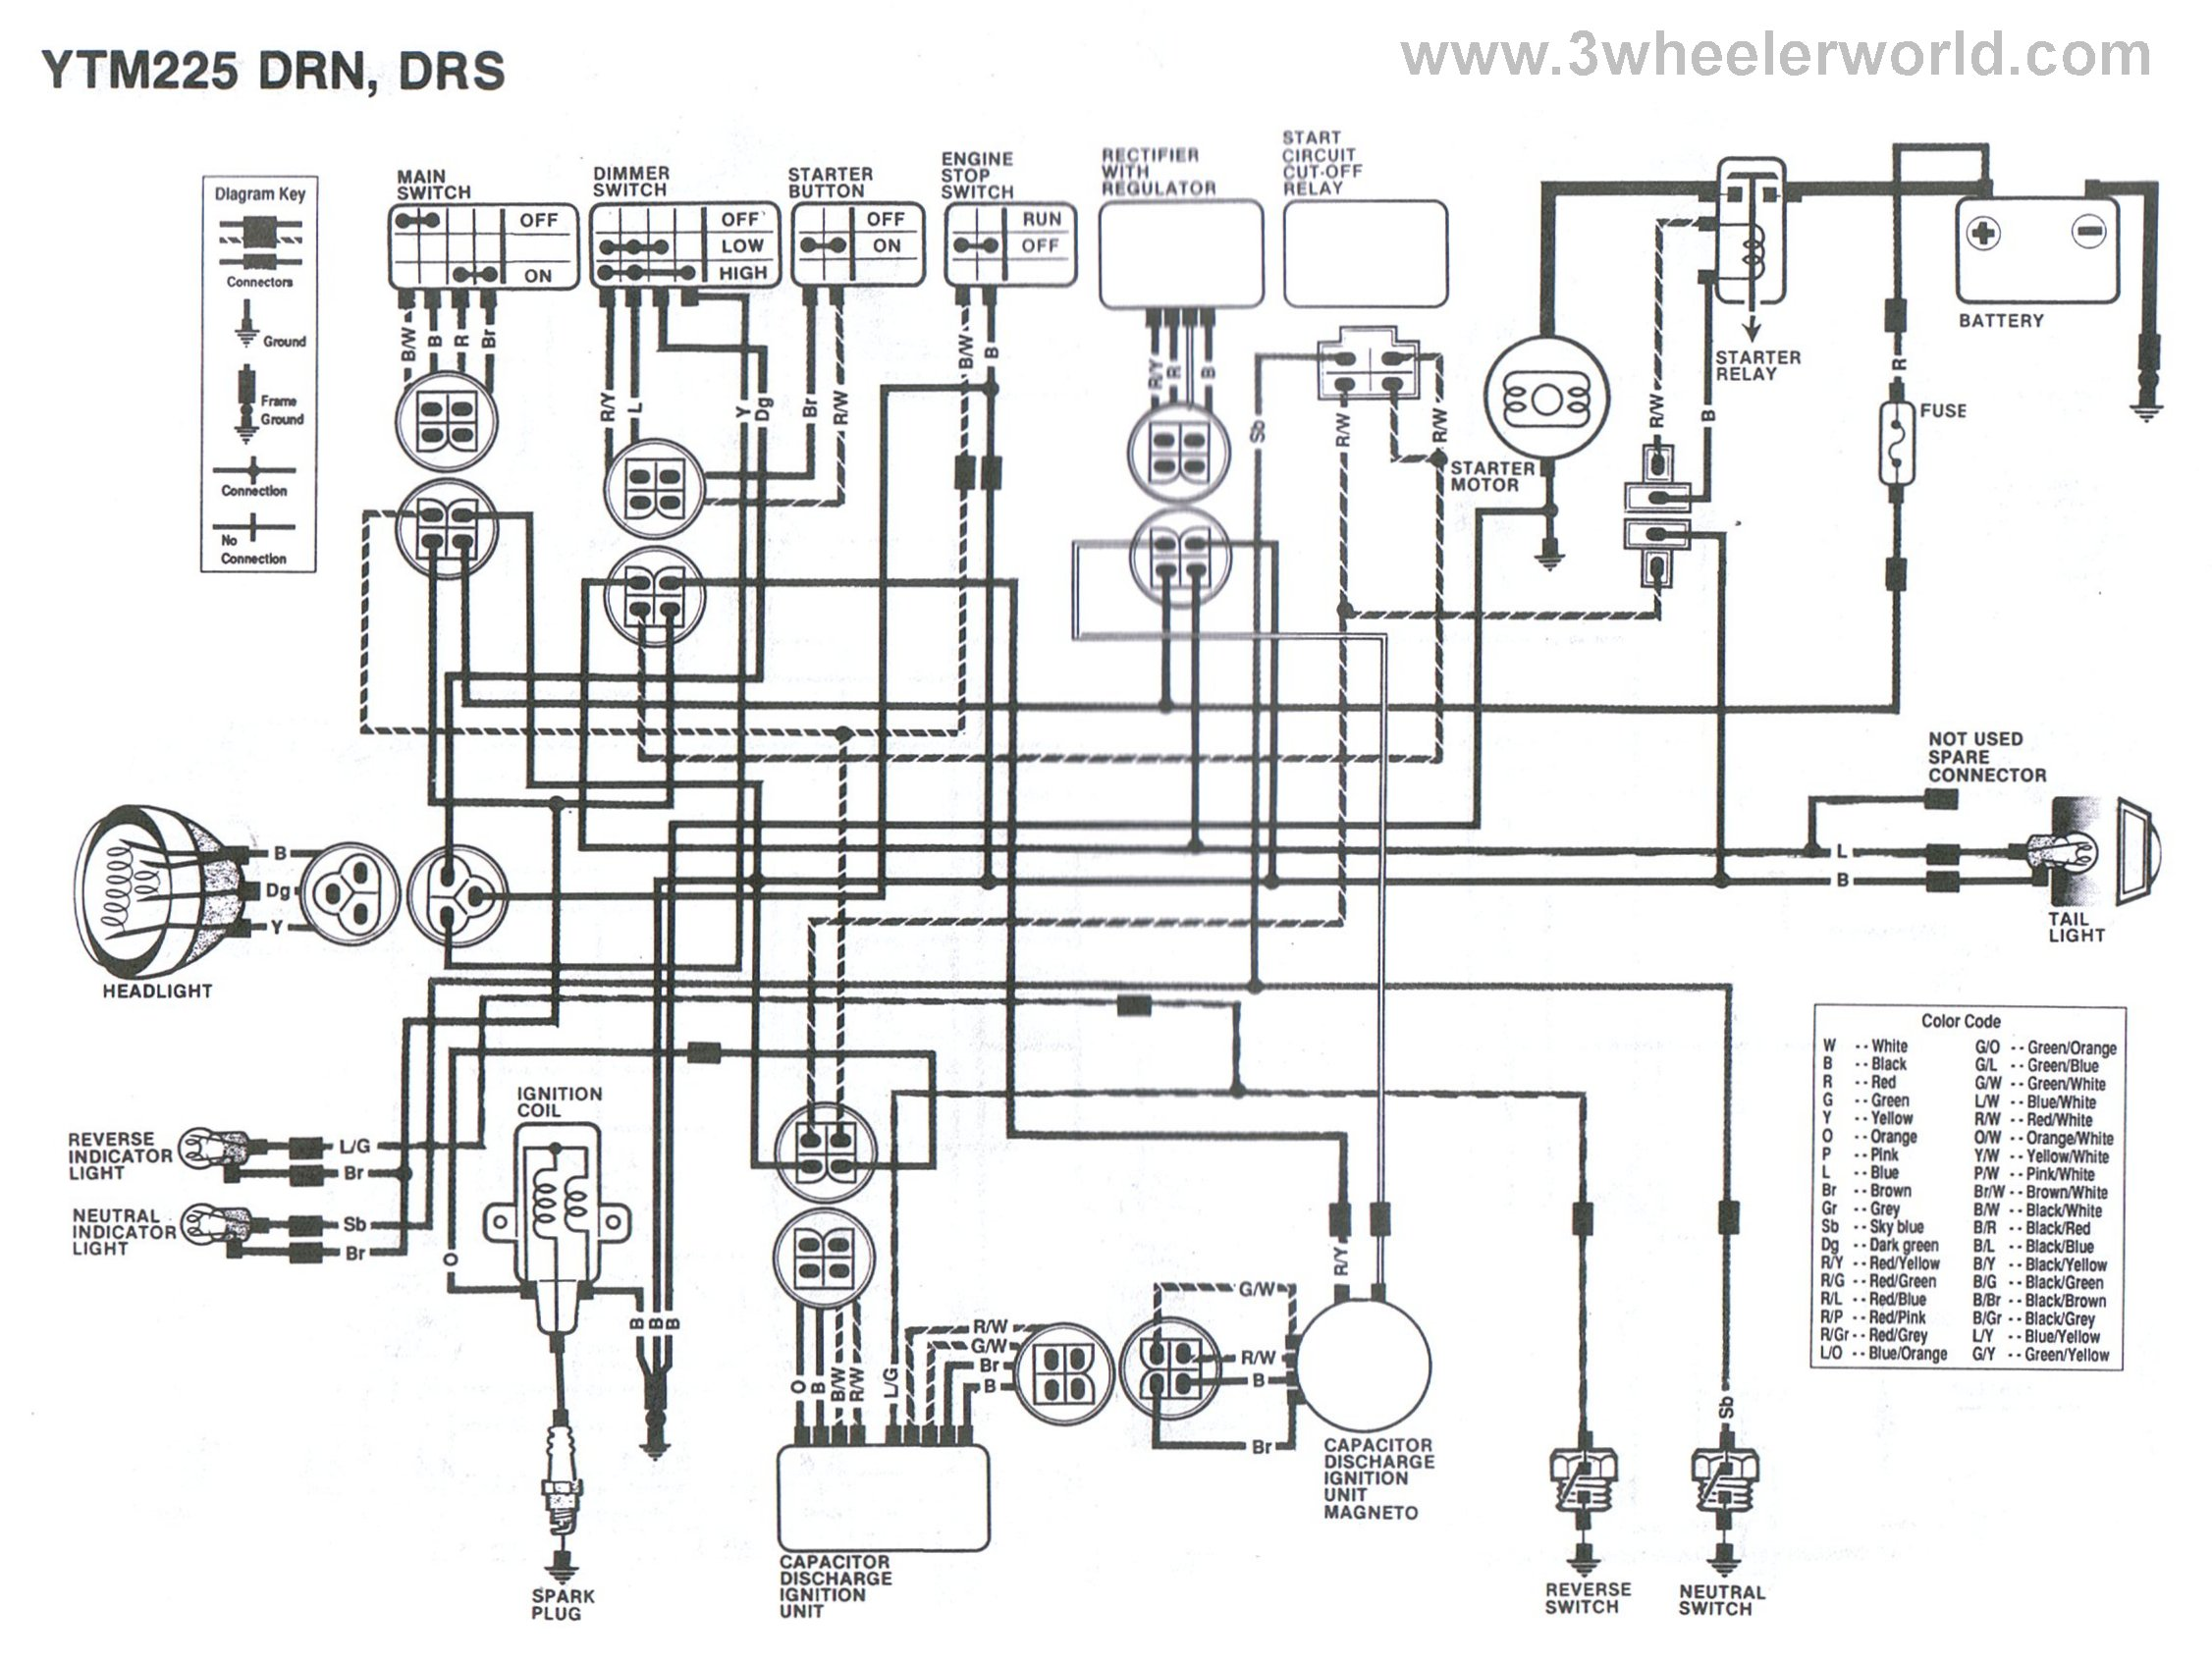 Yamaha Motor Diagrams Electronic Wiring Outboard Engine Diagram Schemes And Transmission